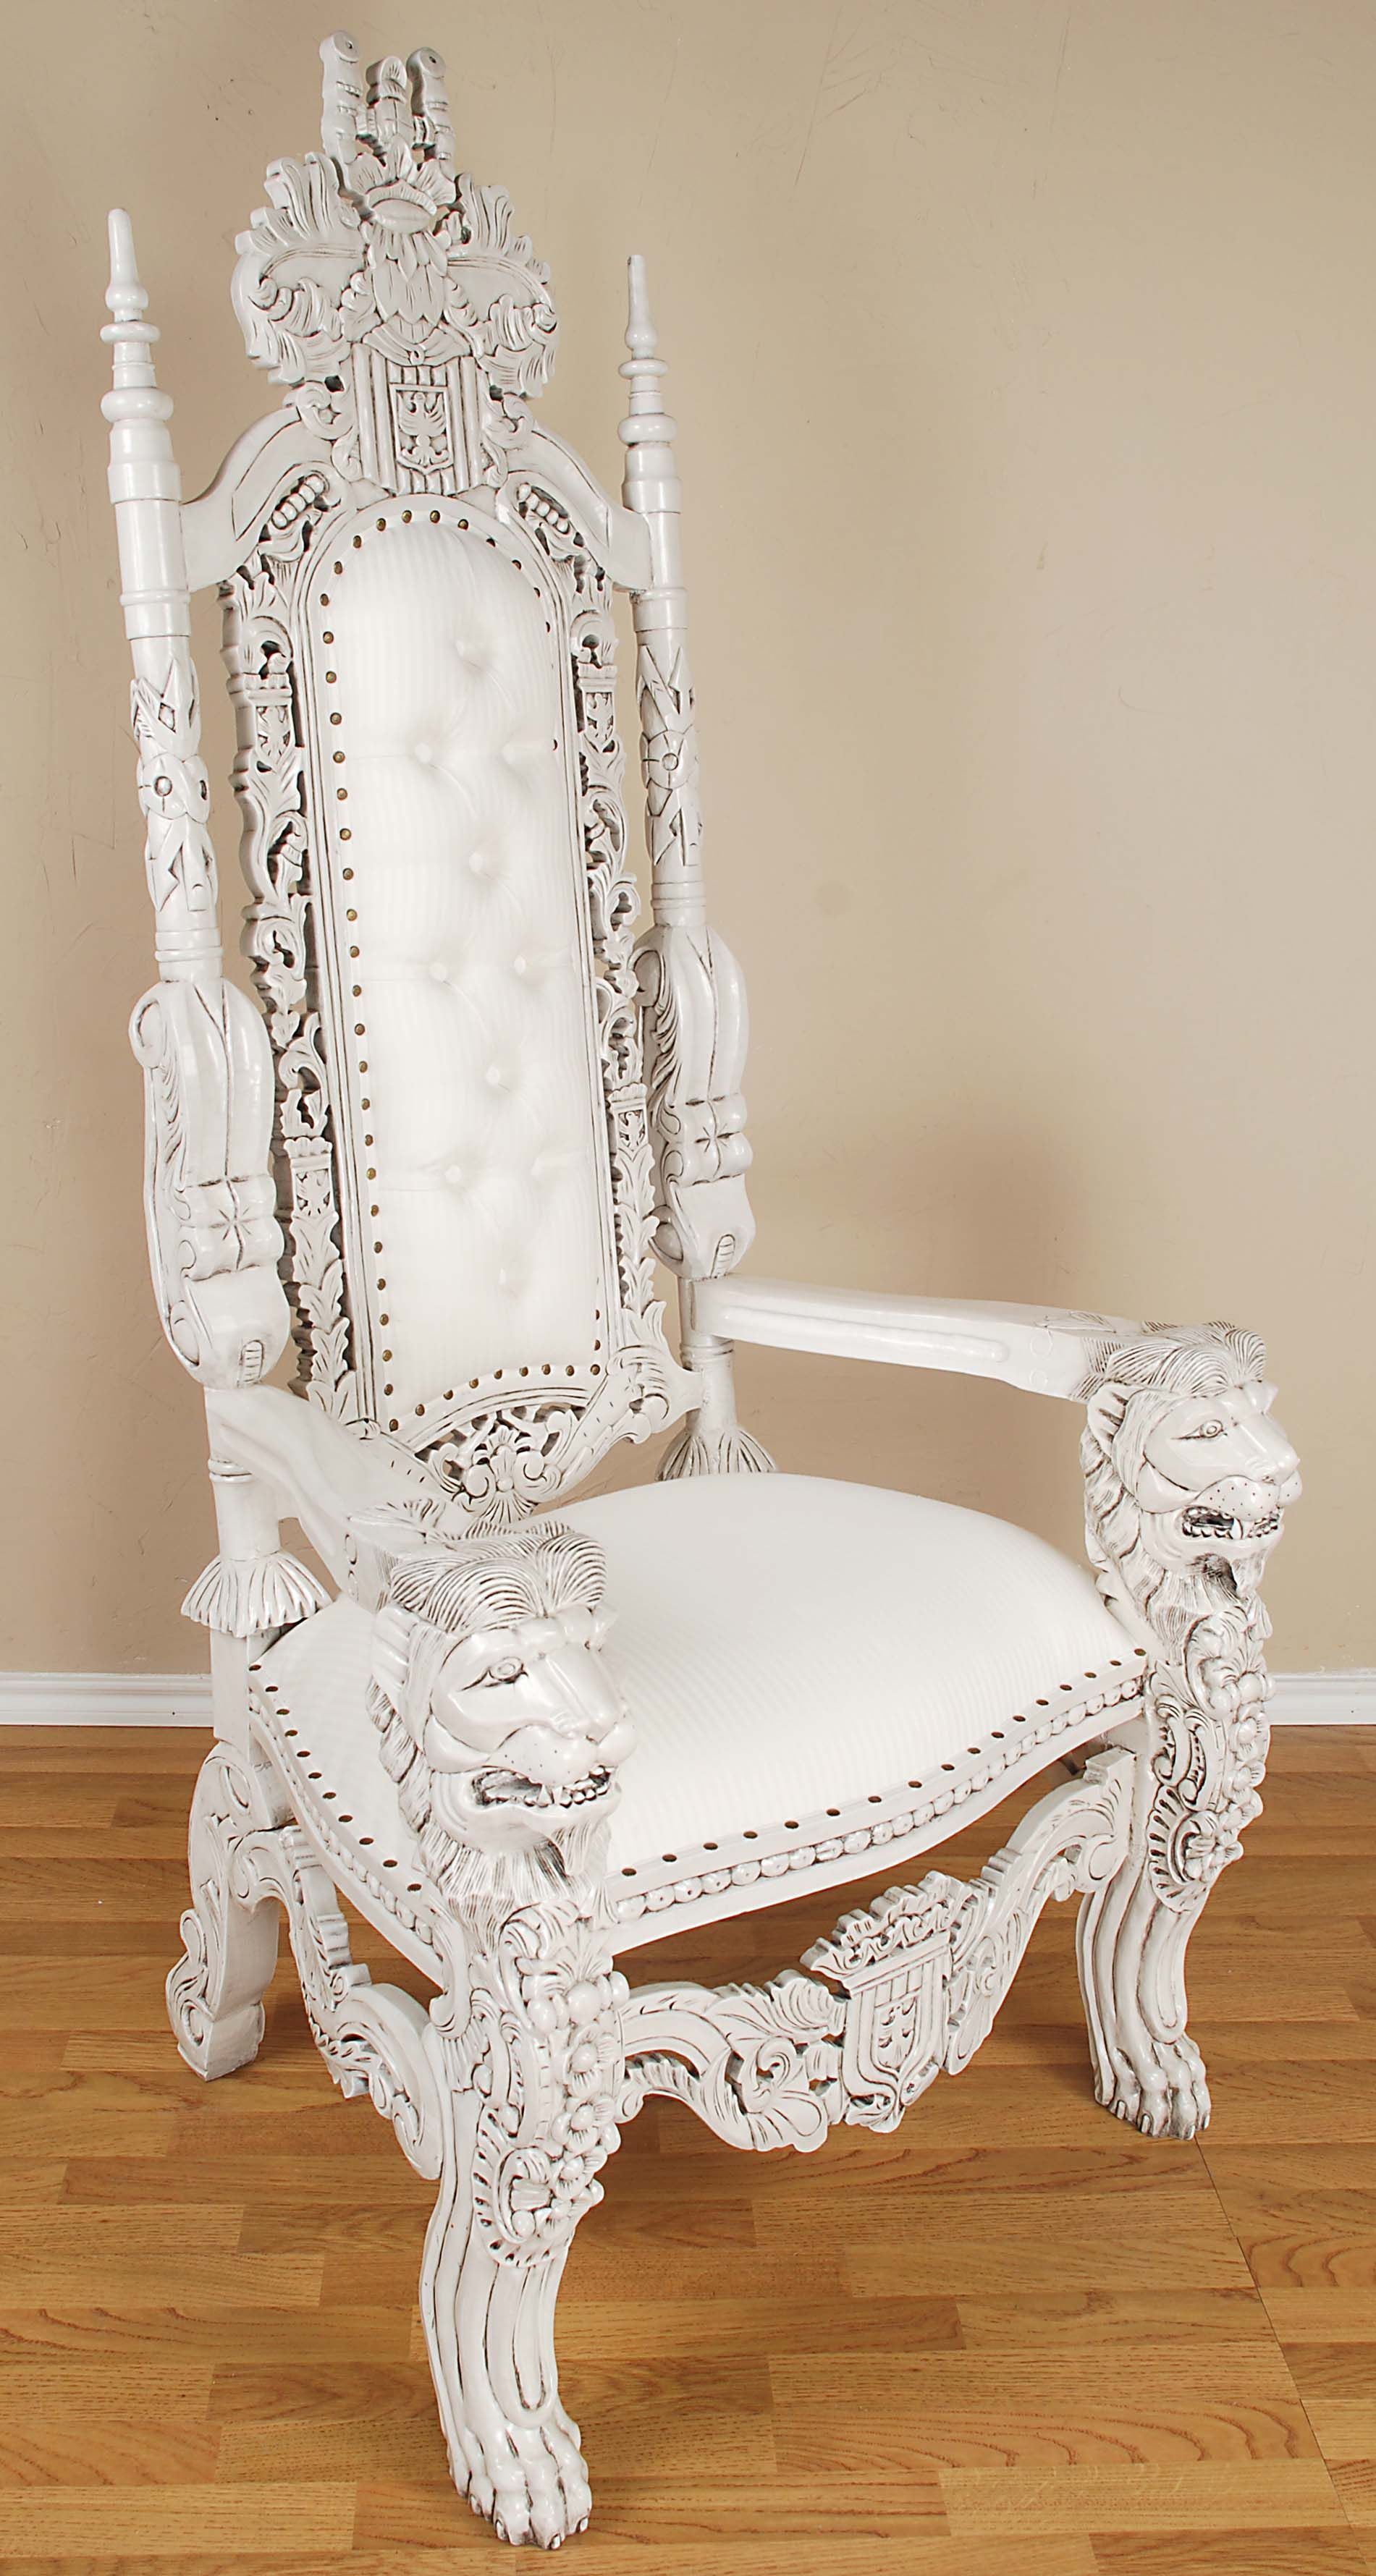 King And Queen Throne Chairs For Rent King Lion Throne Chair White For The Home In 2019